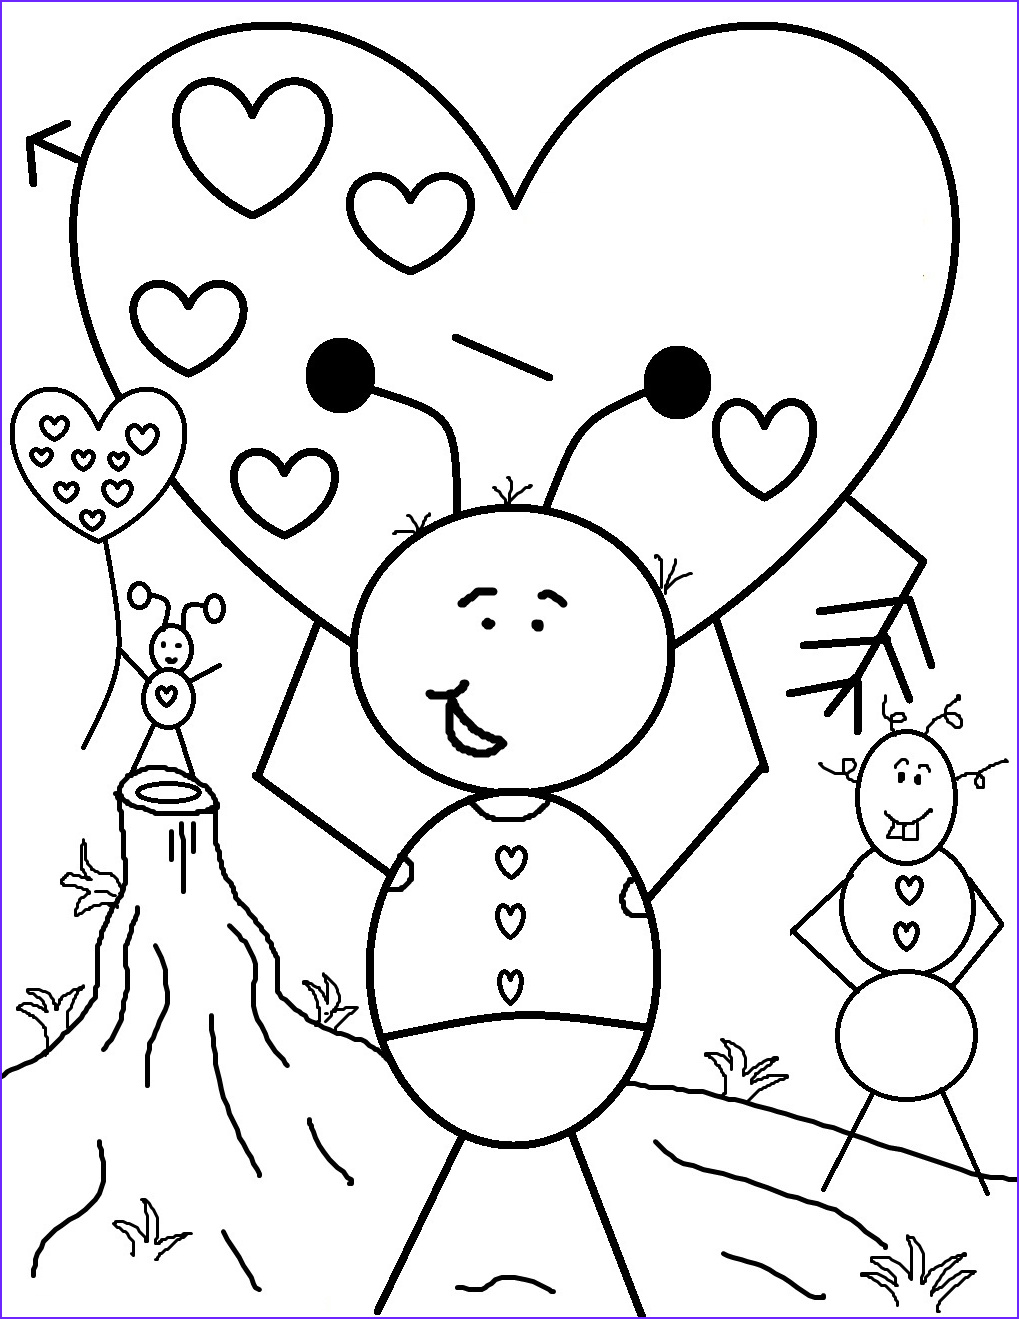 Valentine Coloring Pages Free Luxury Image Free Printable Valentine Coloring Pages for Kids